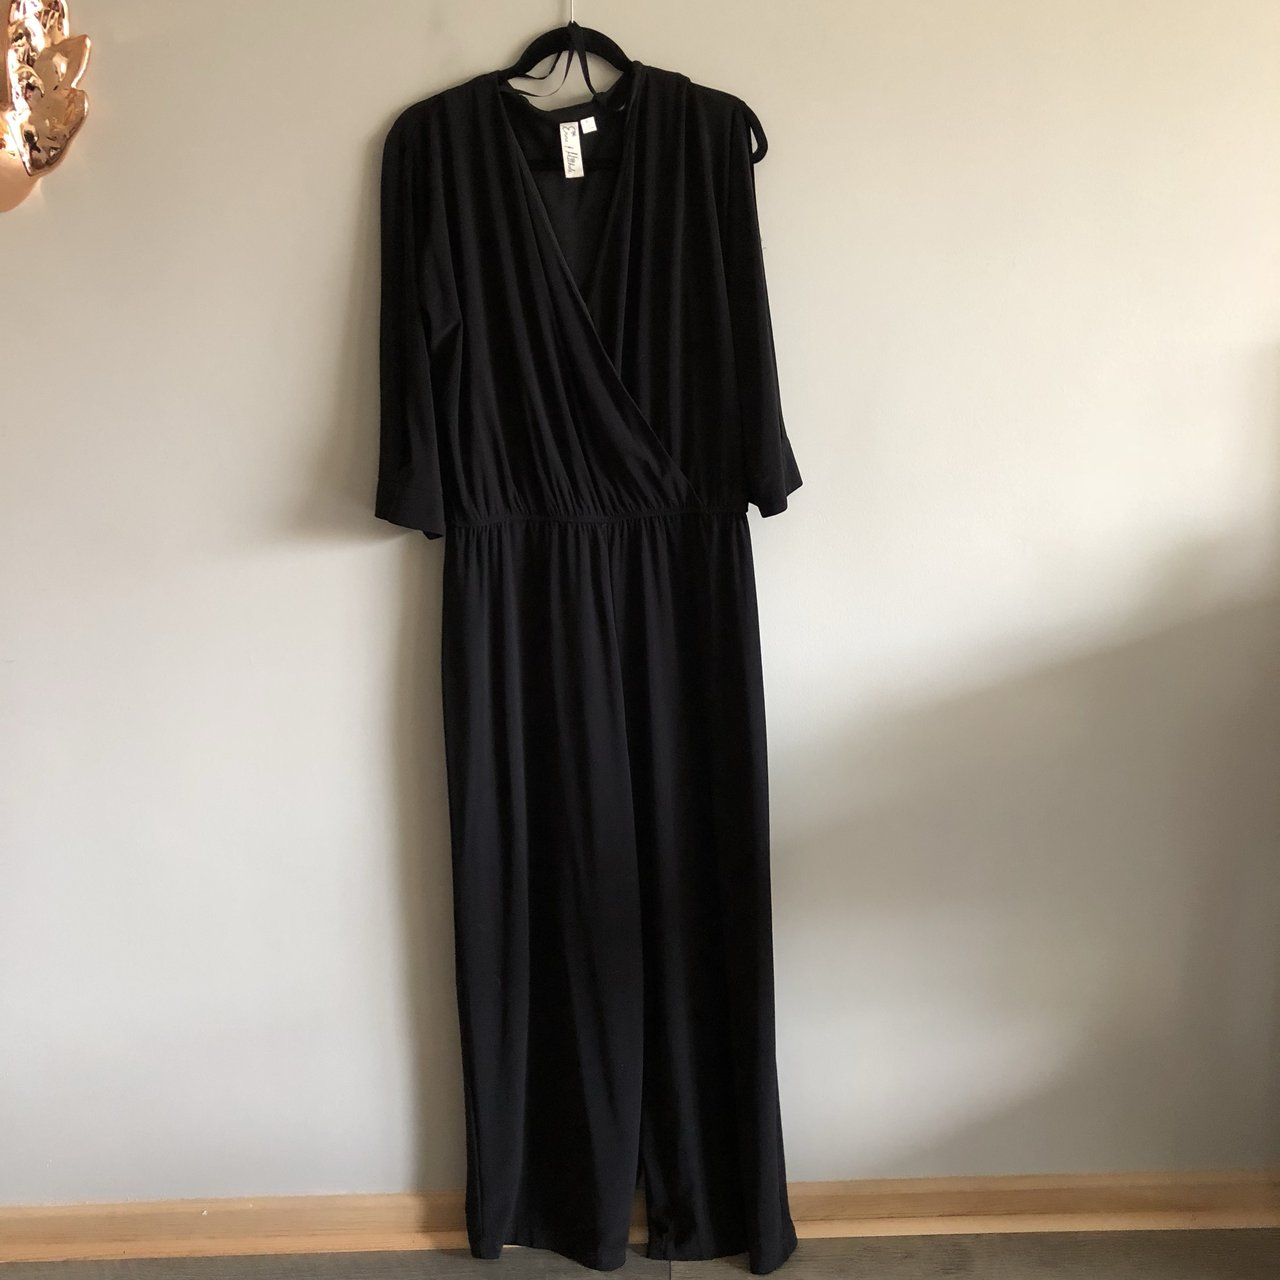 7f25805b7f85 Wide leg jumpsuit with open sleeves. Very sexy. GUC (some at - Depop